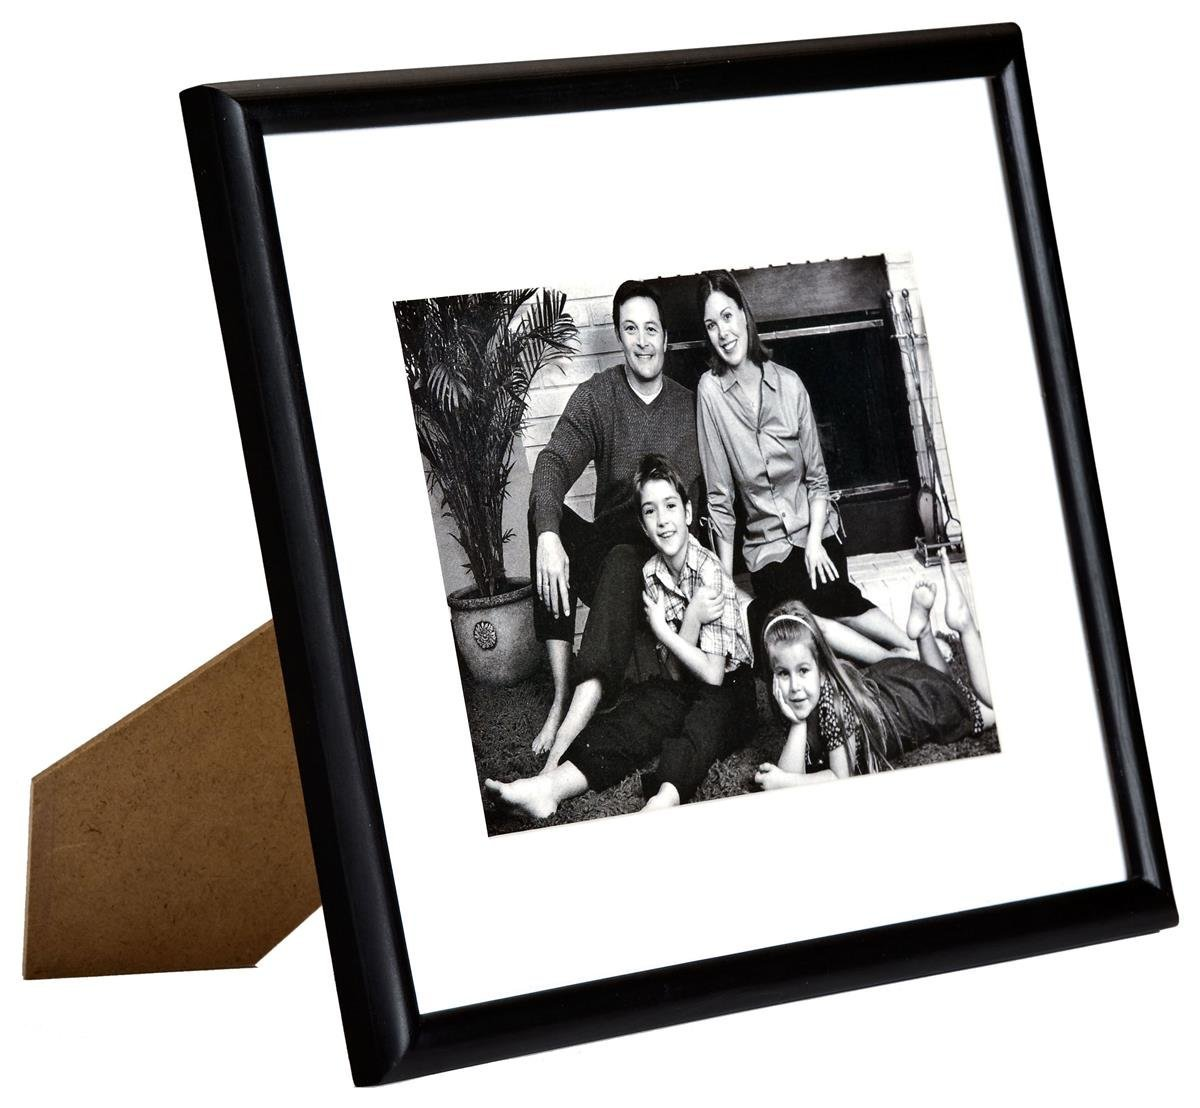 Displays2go Black Photo Frame, Wood, Matted, Choose 4x6, 5x7, or 8x10 - Set of 6